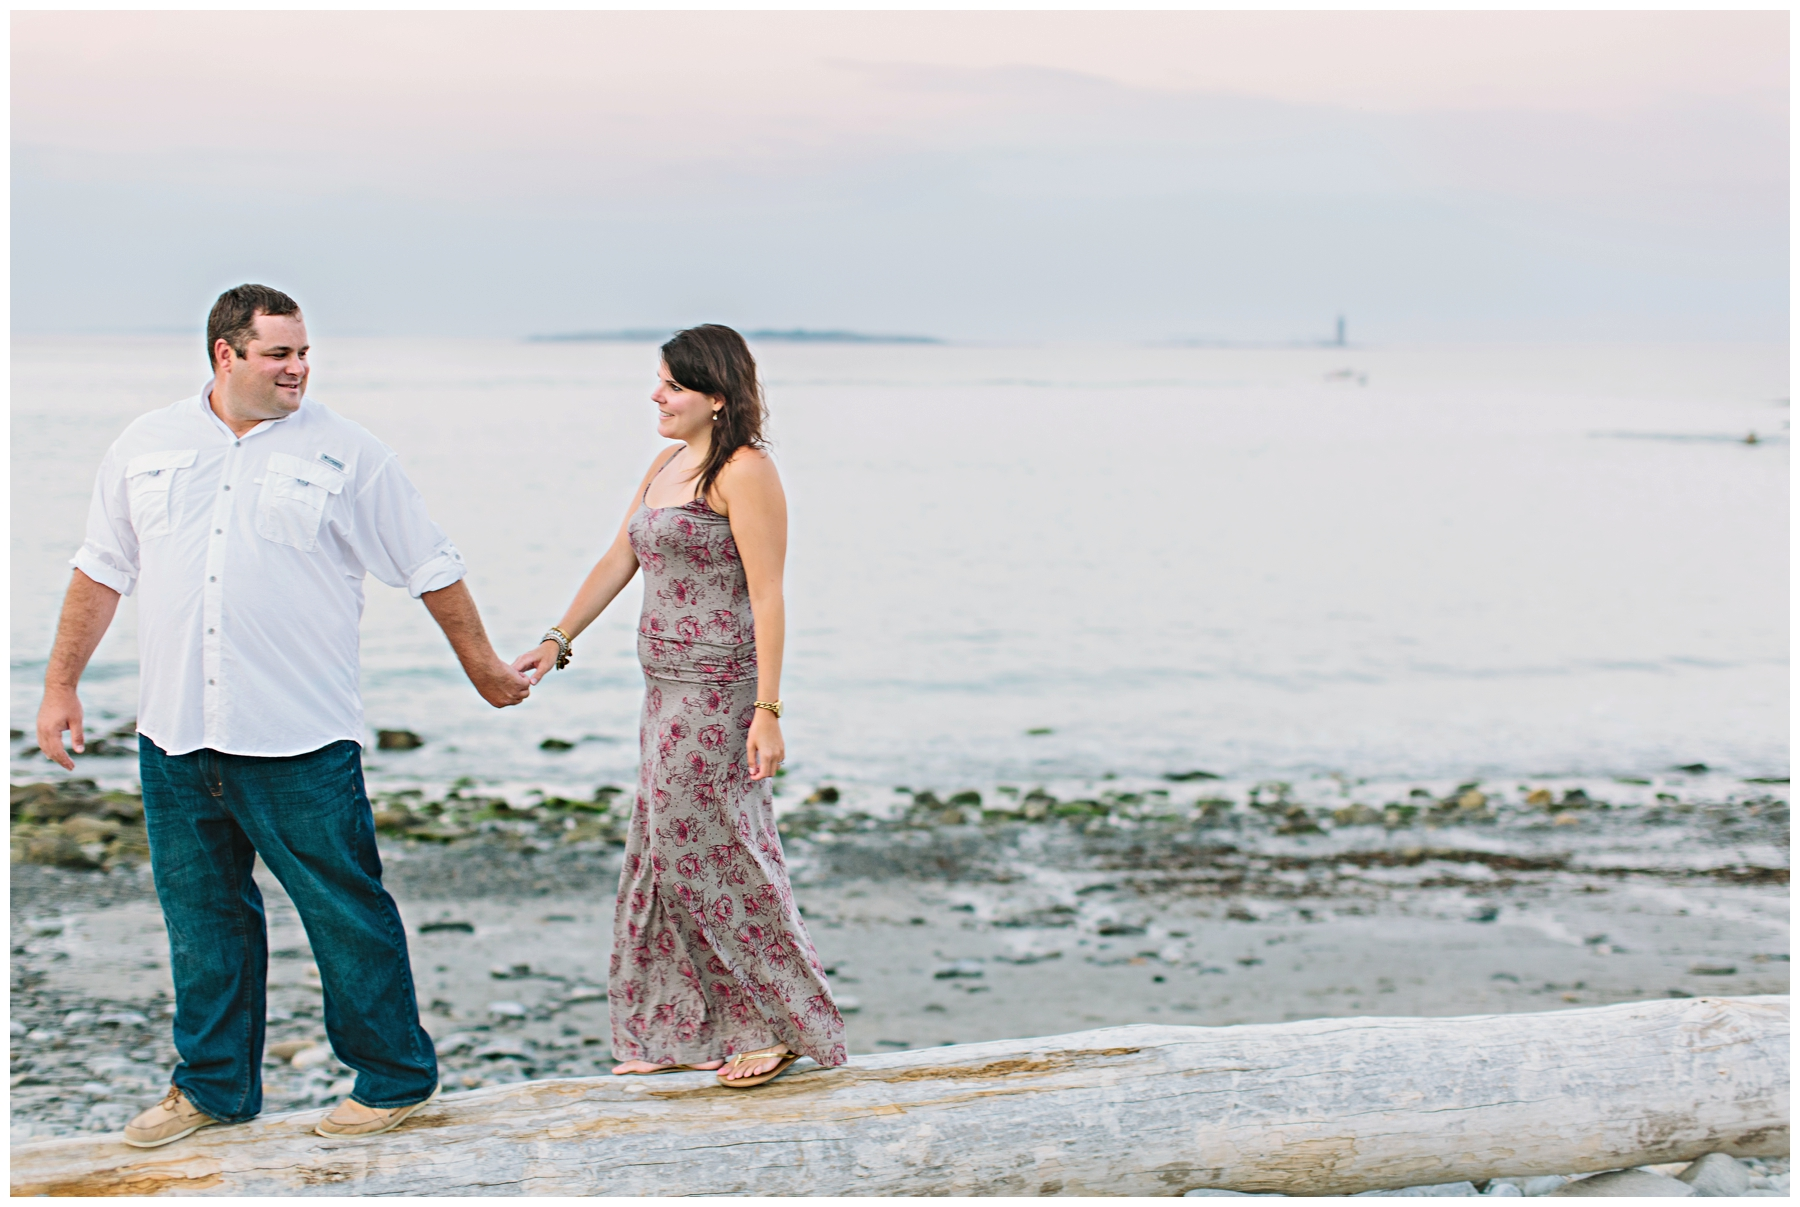 Maine_Photographer_Engagements_FortWilliams_PortlandHeadLight_lighthouse_coastal_seaside-028